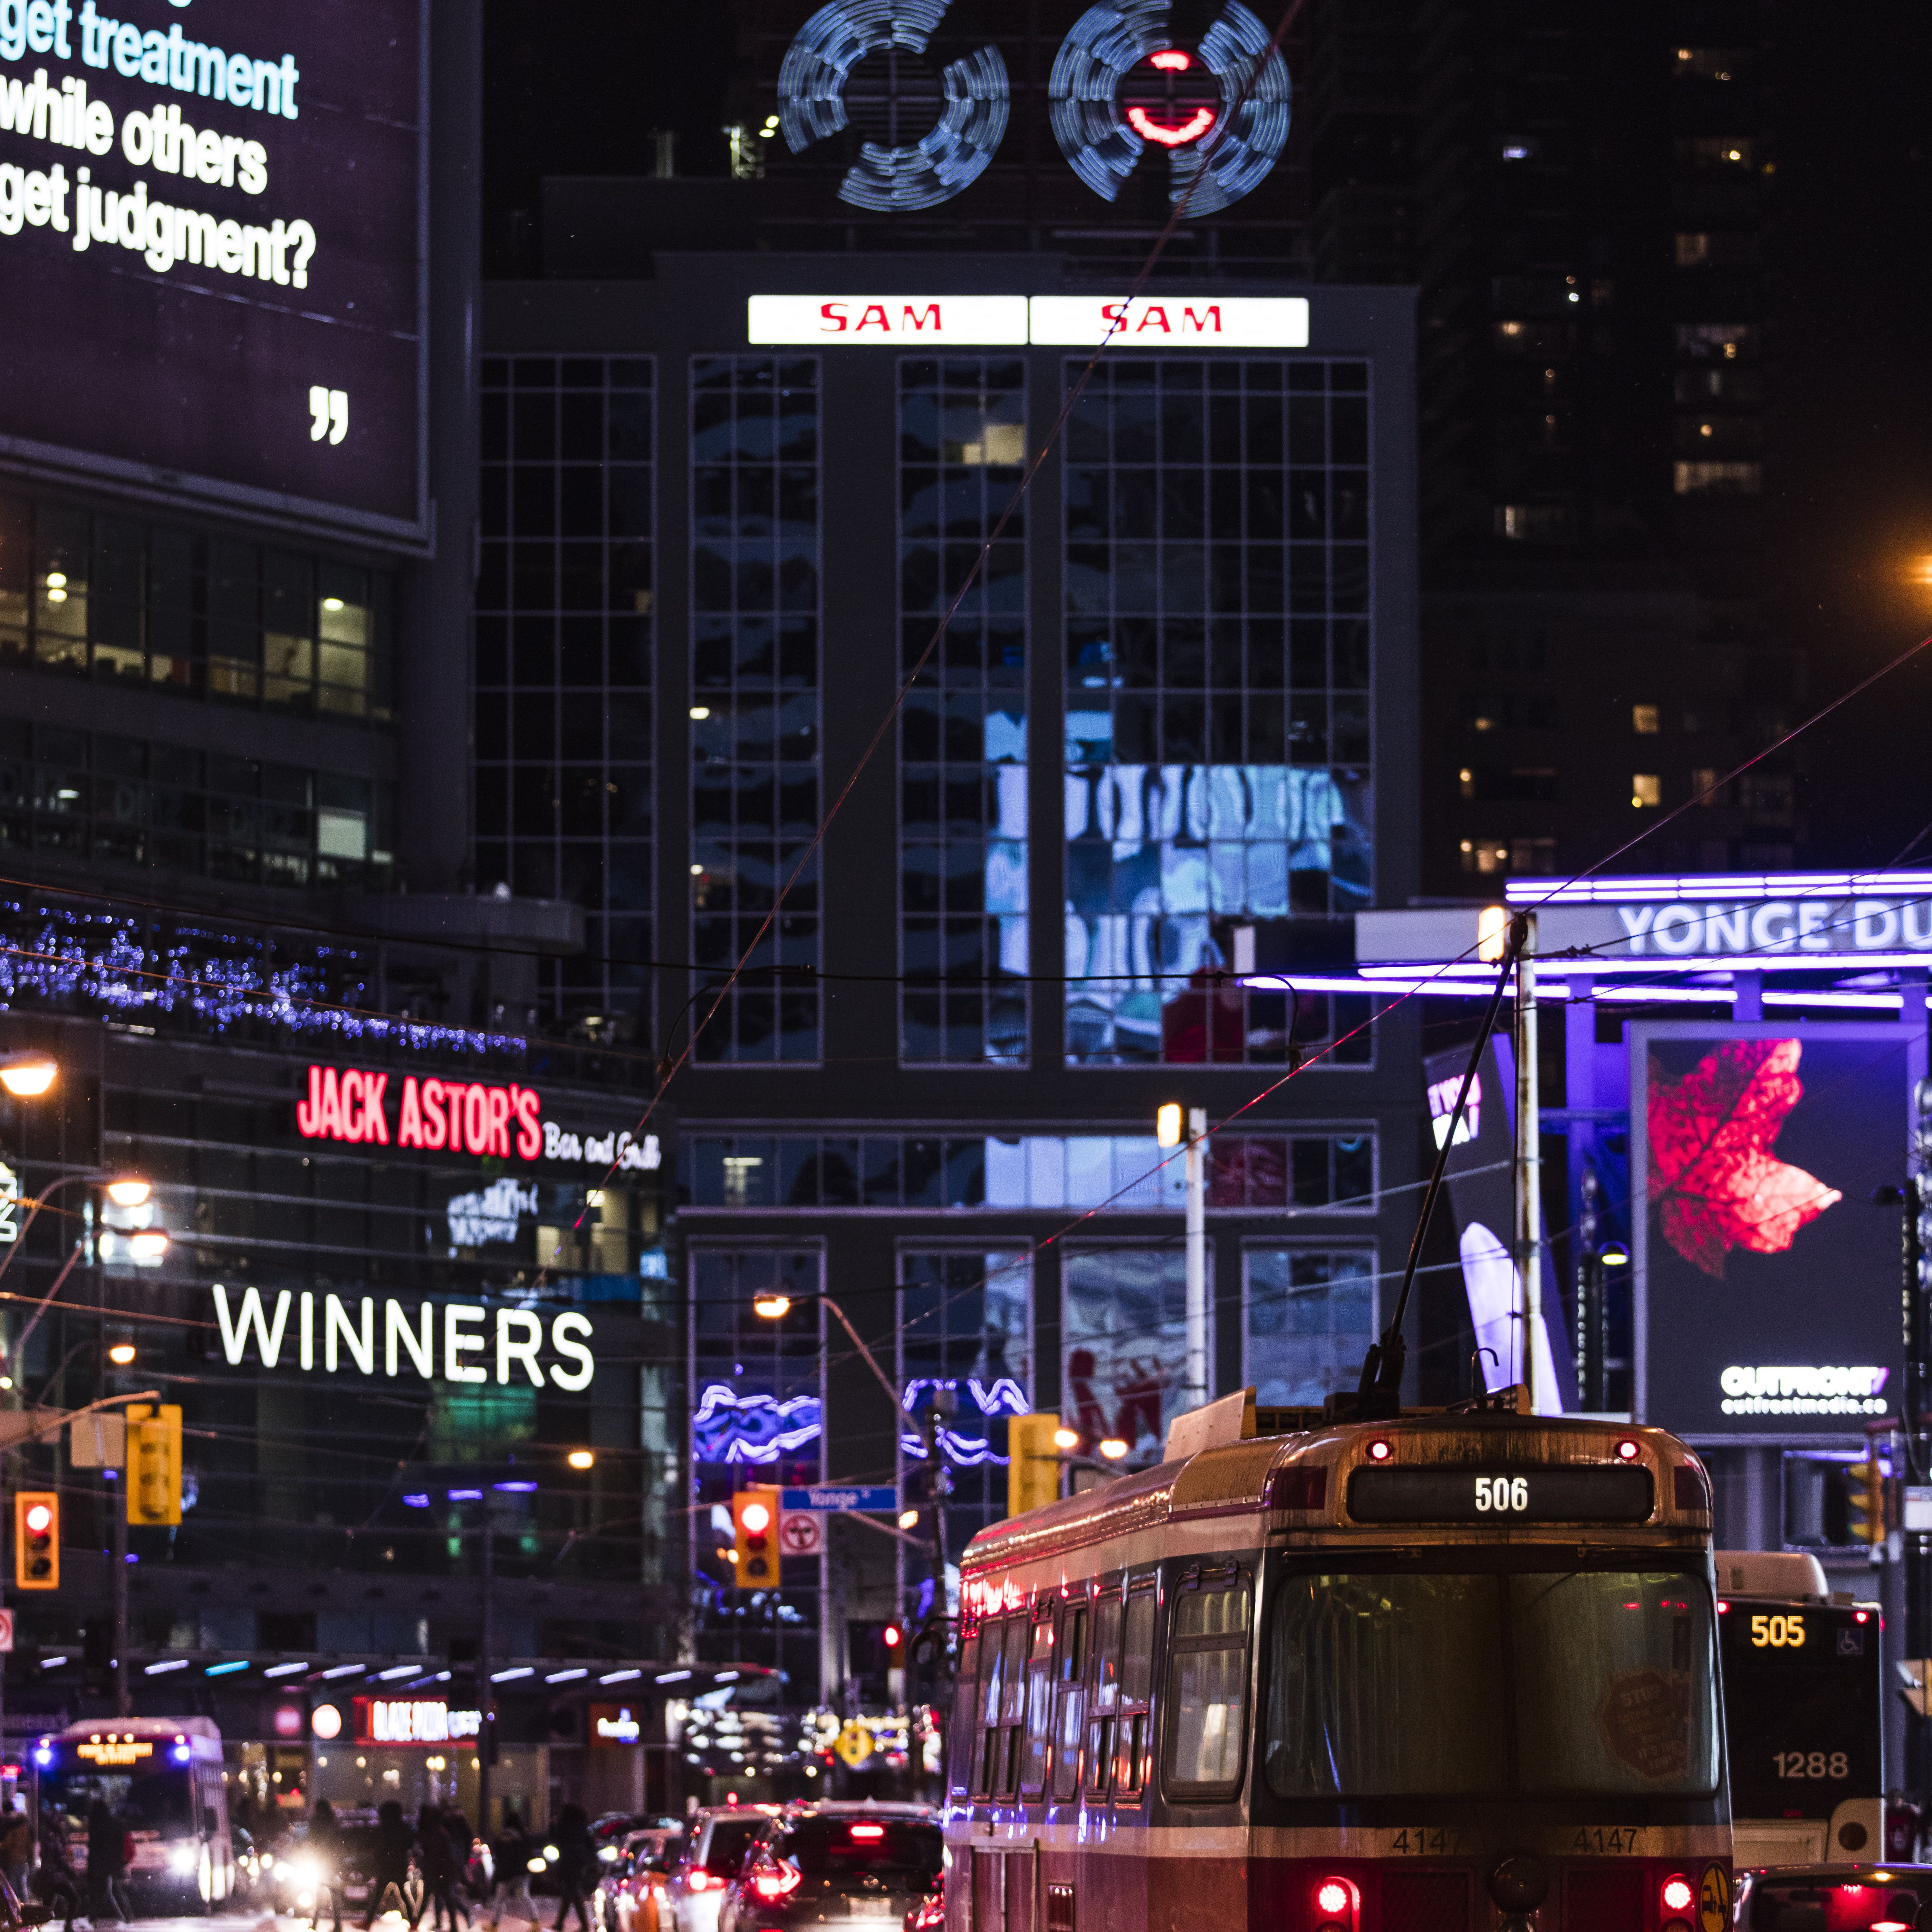 Lights and screens in Yonge Dundas Square